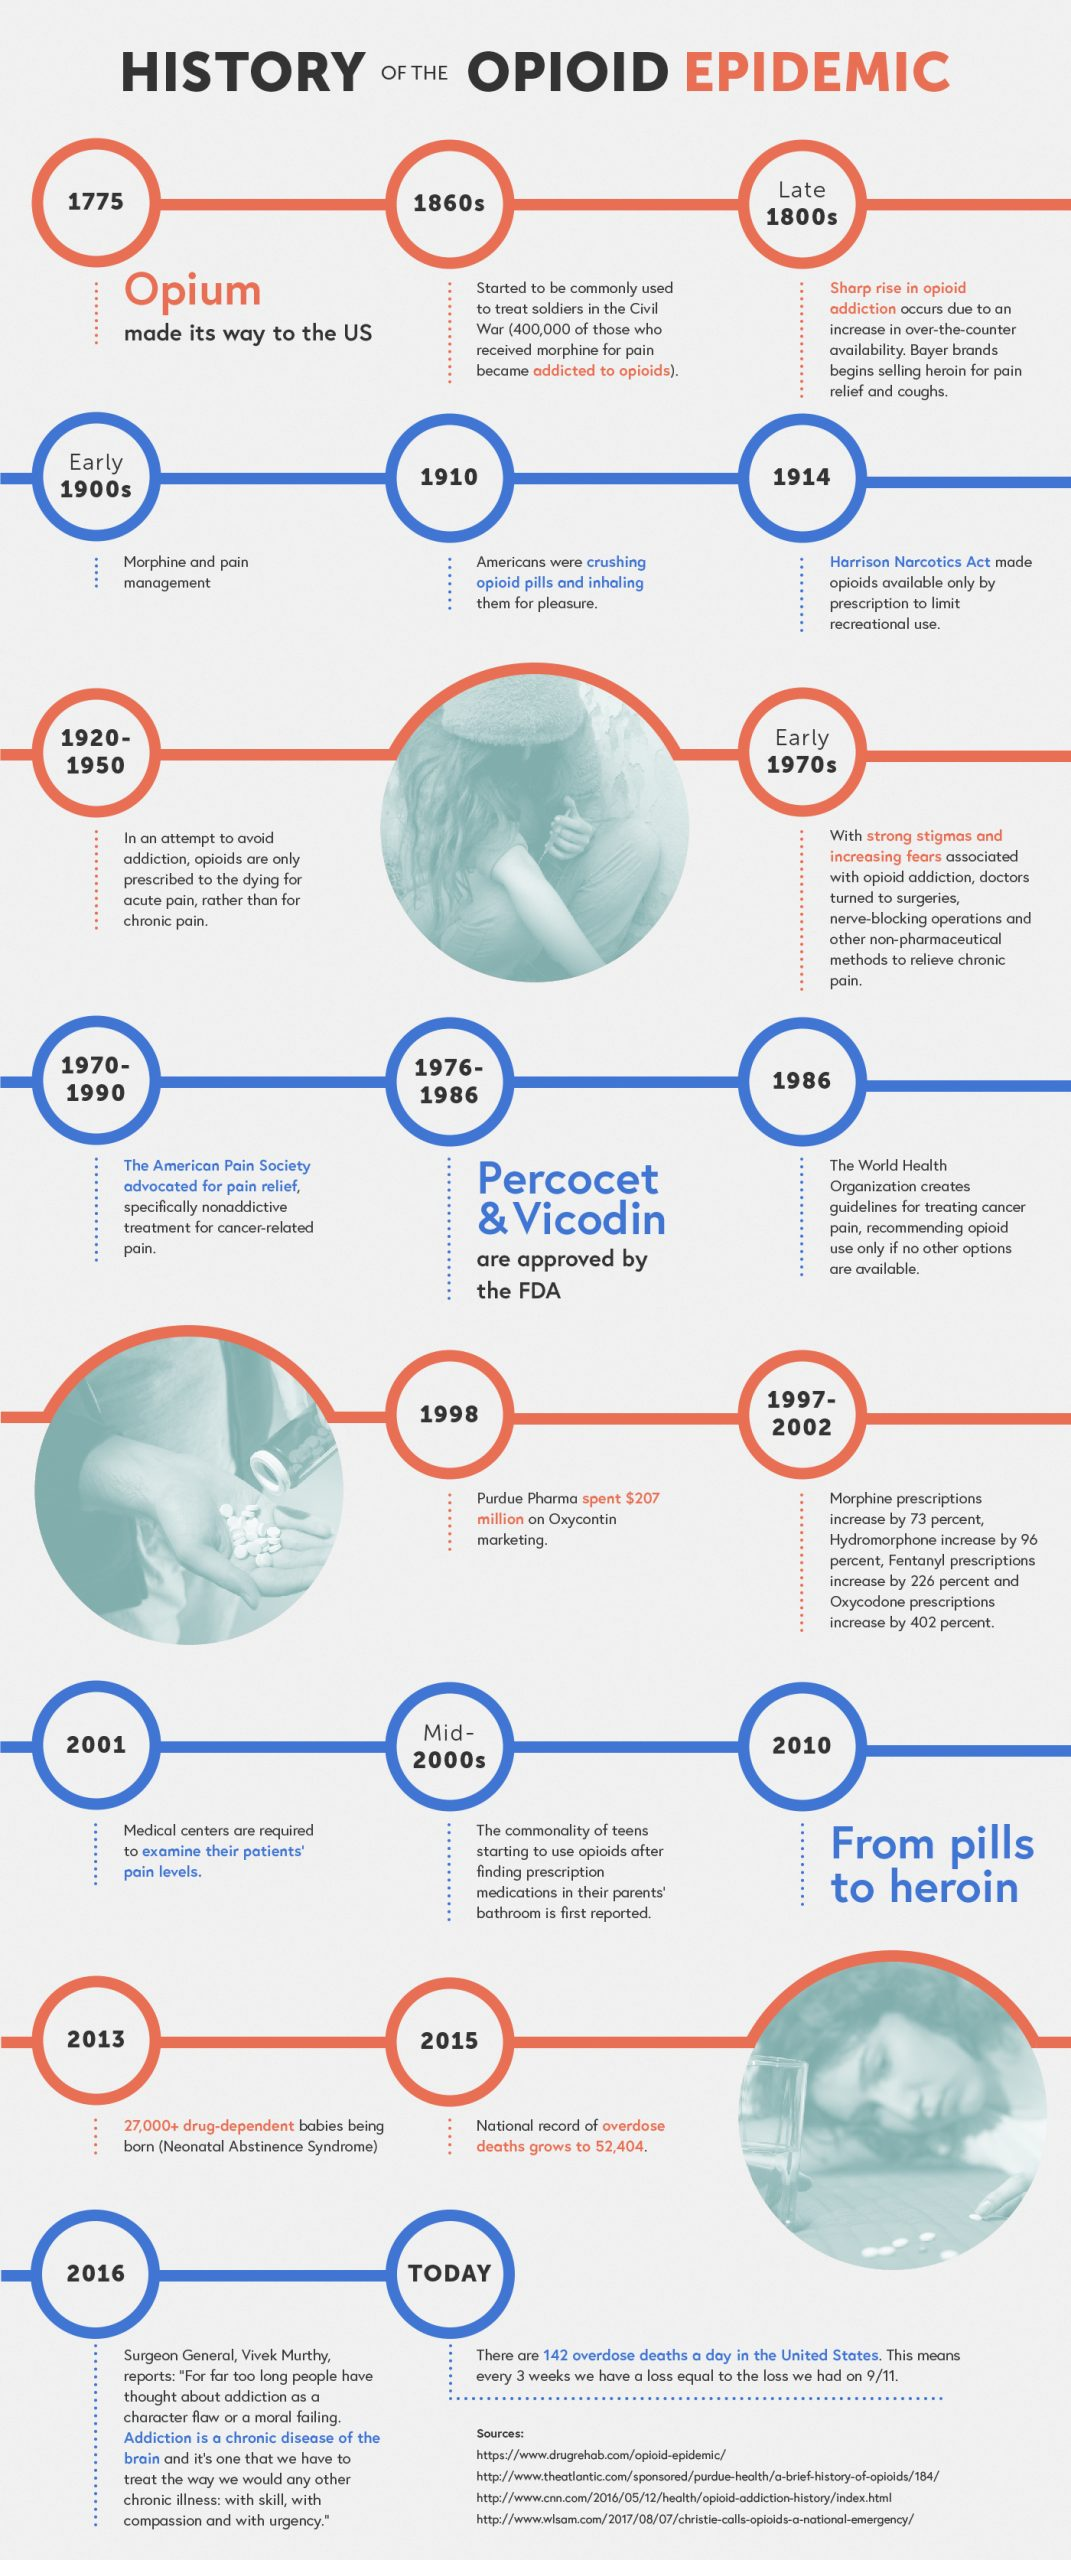 Infograph of the history of the opioid epidemic started in 1775 with opium making its way to the united states.